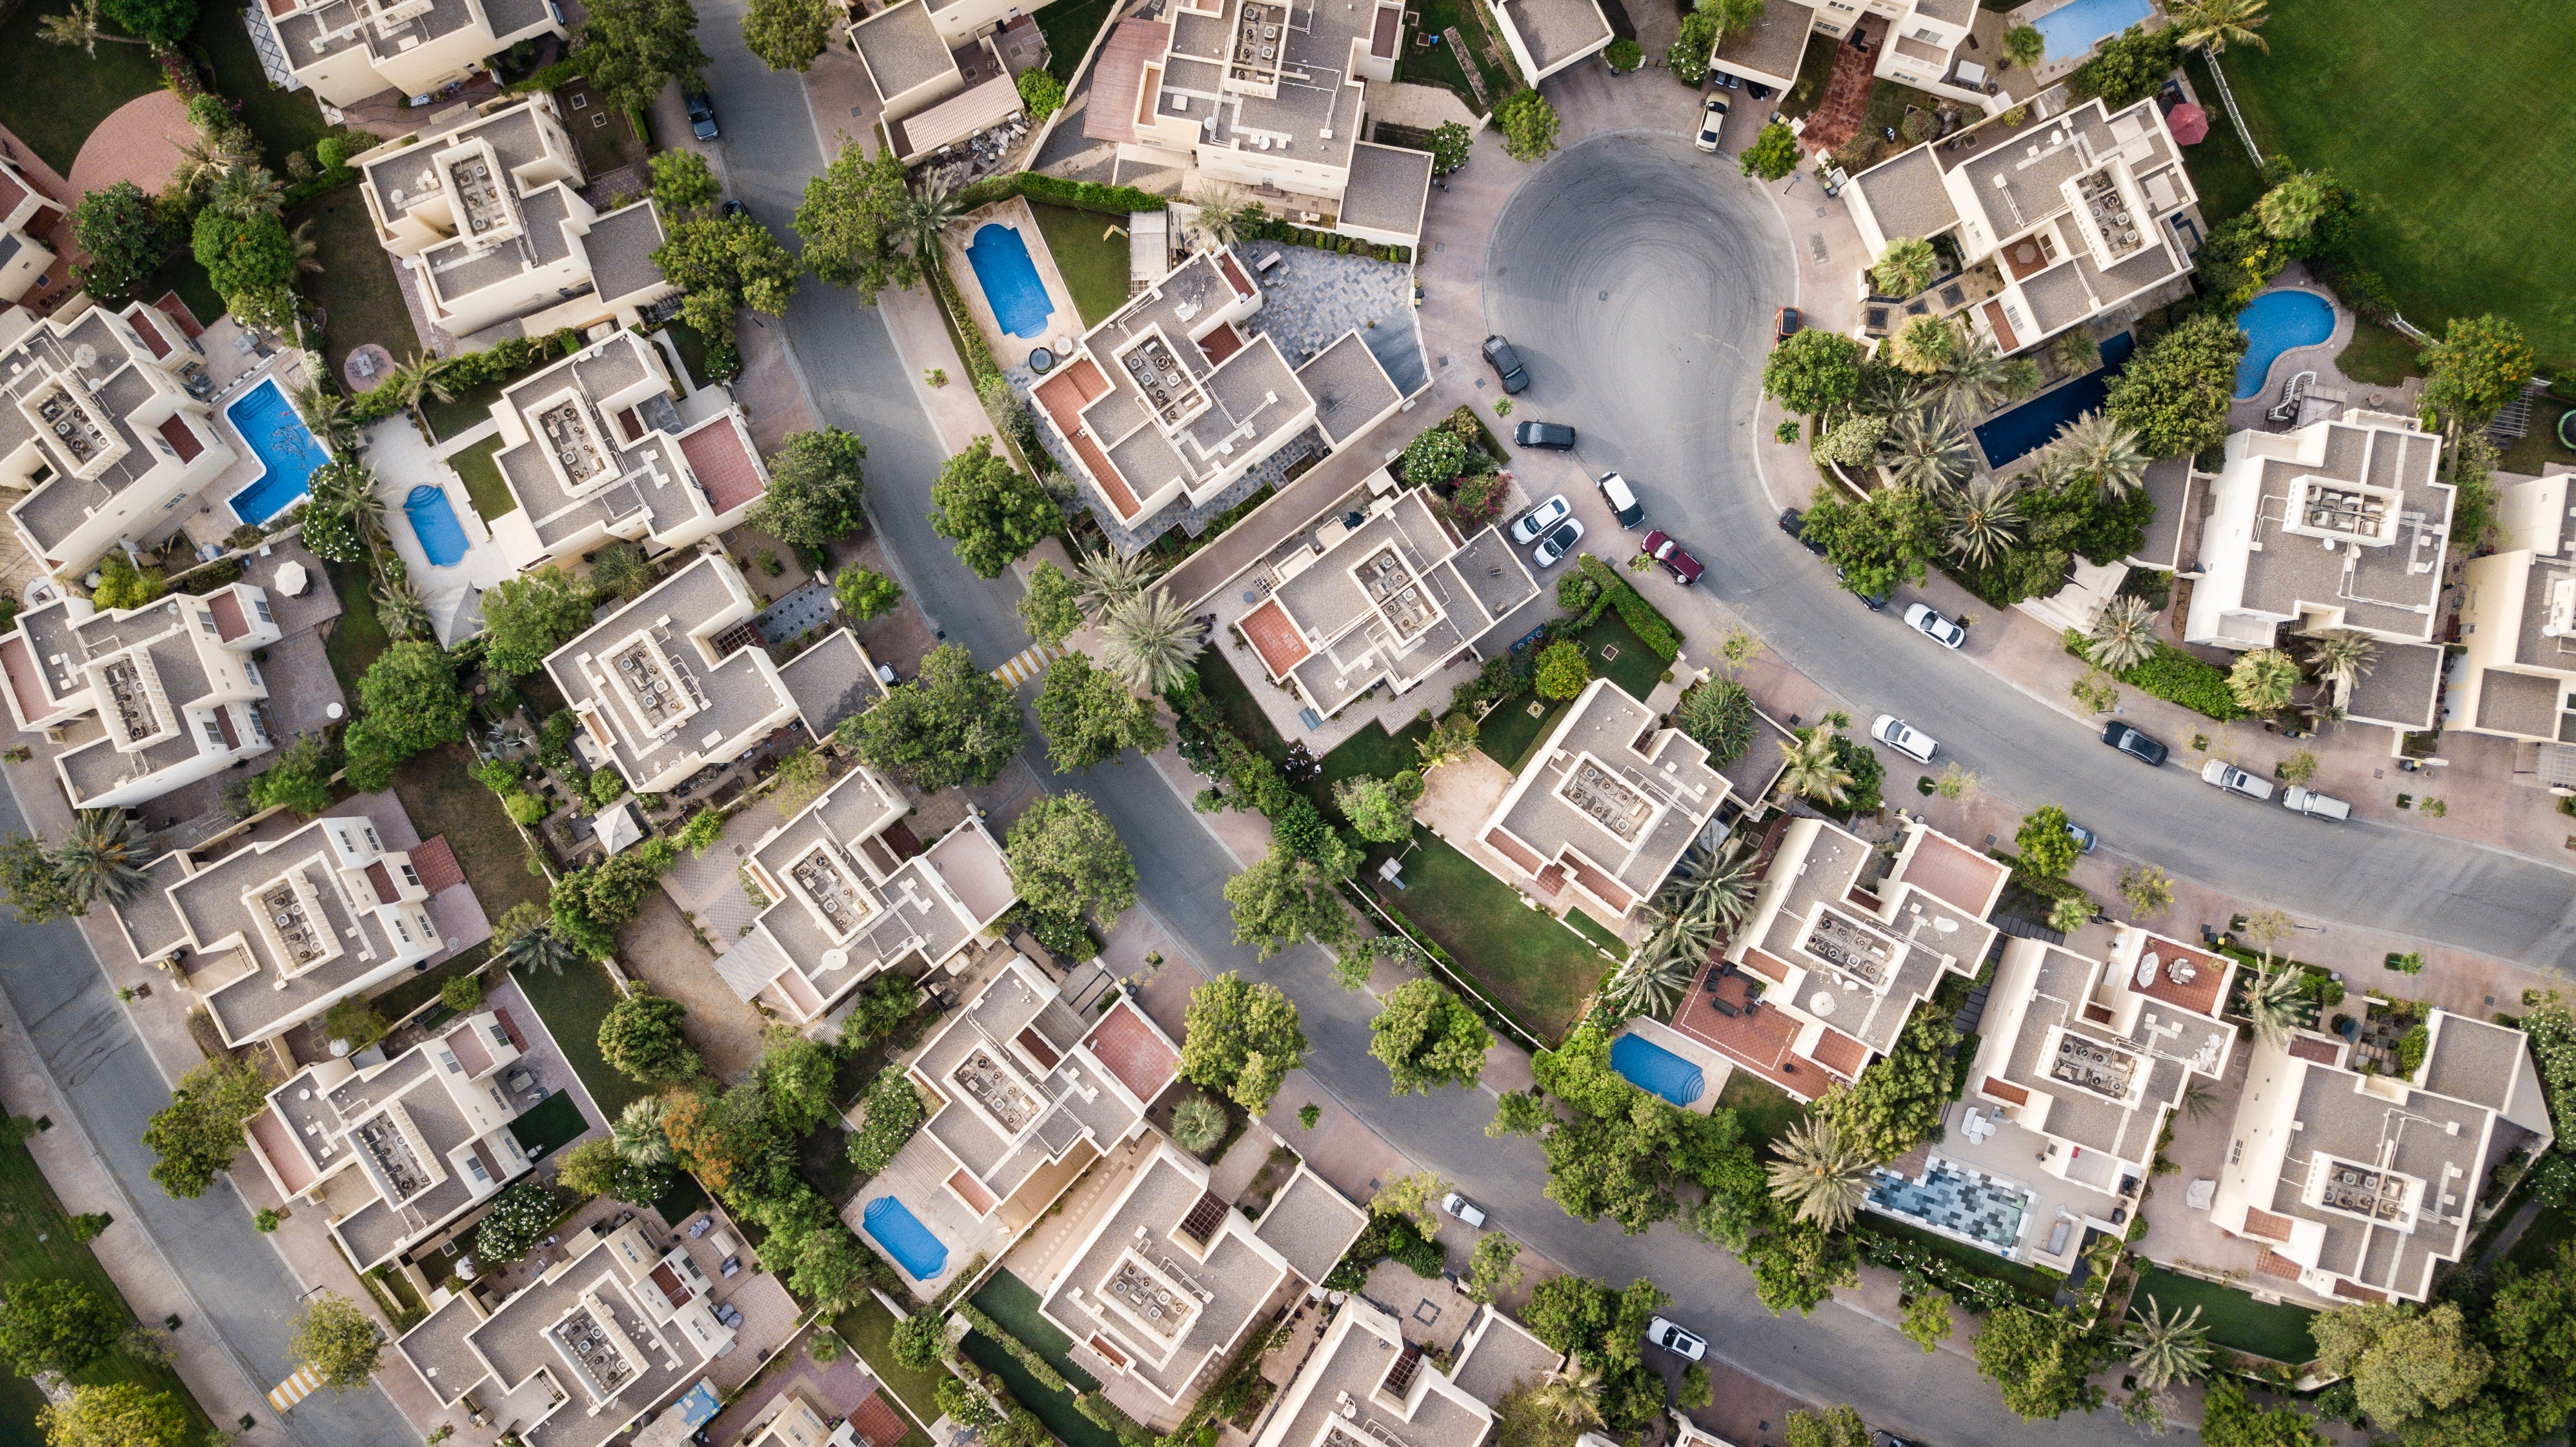 Aerial Shot From a Drone of Real Estate Houses